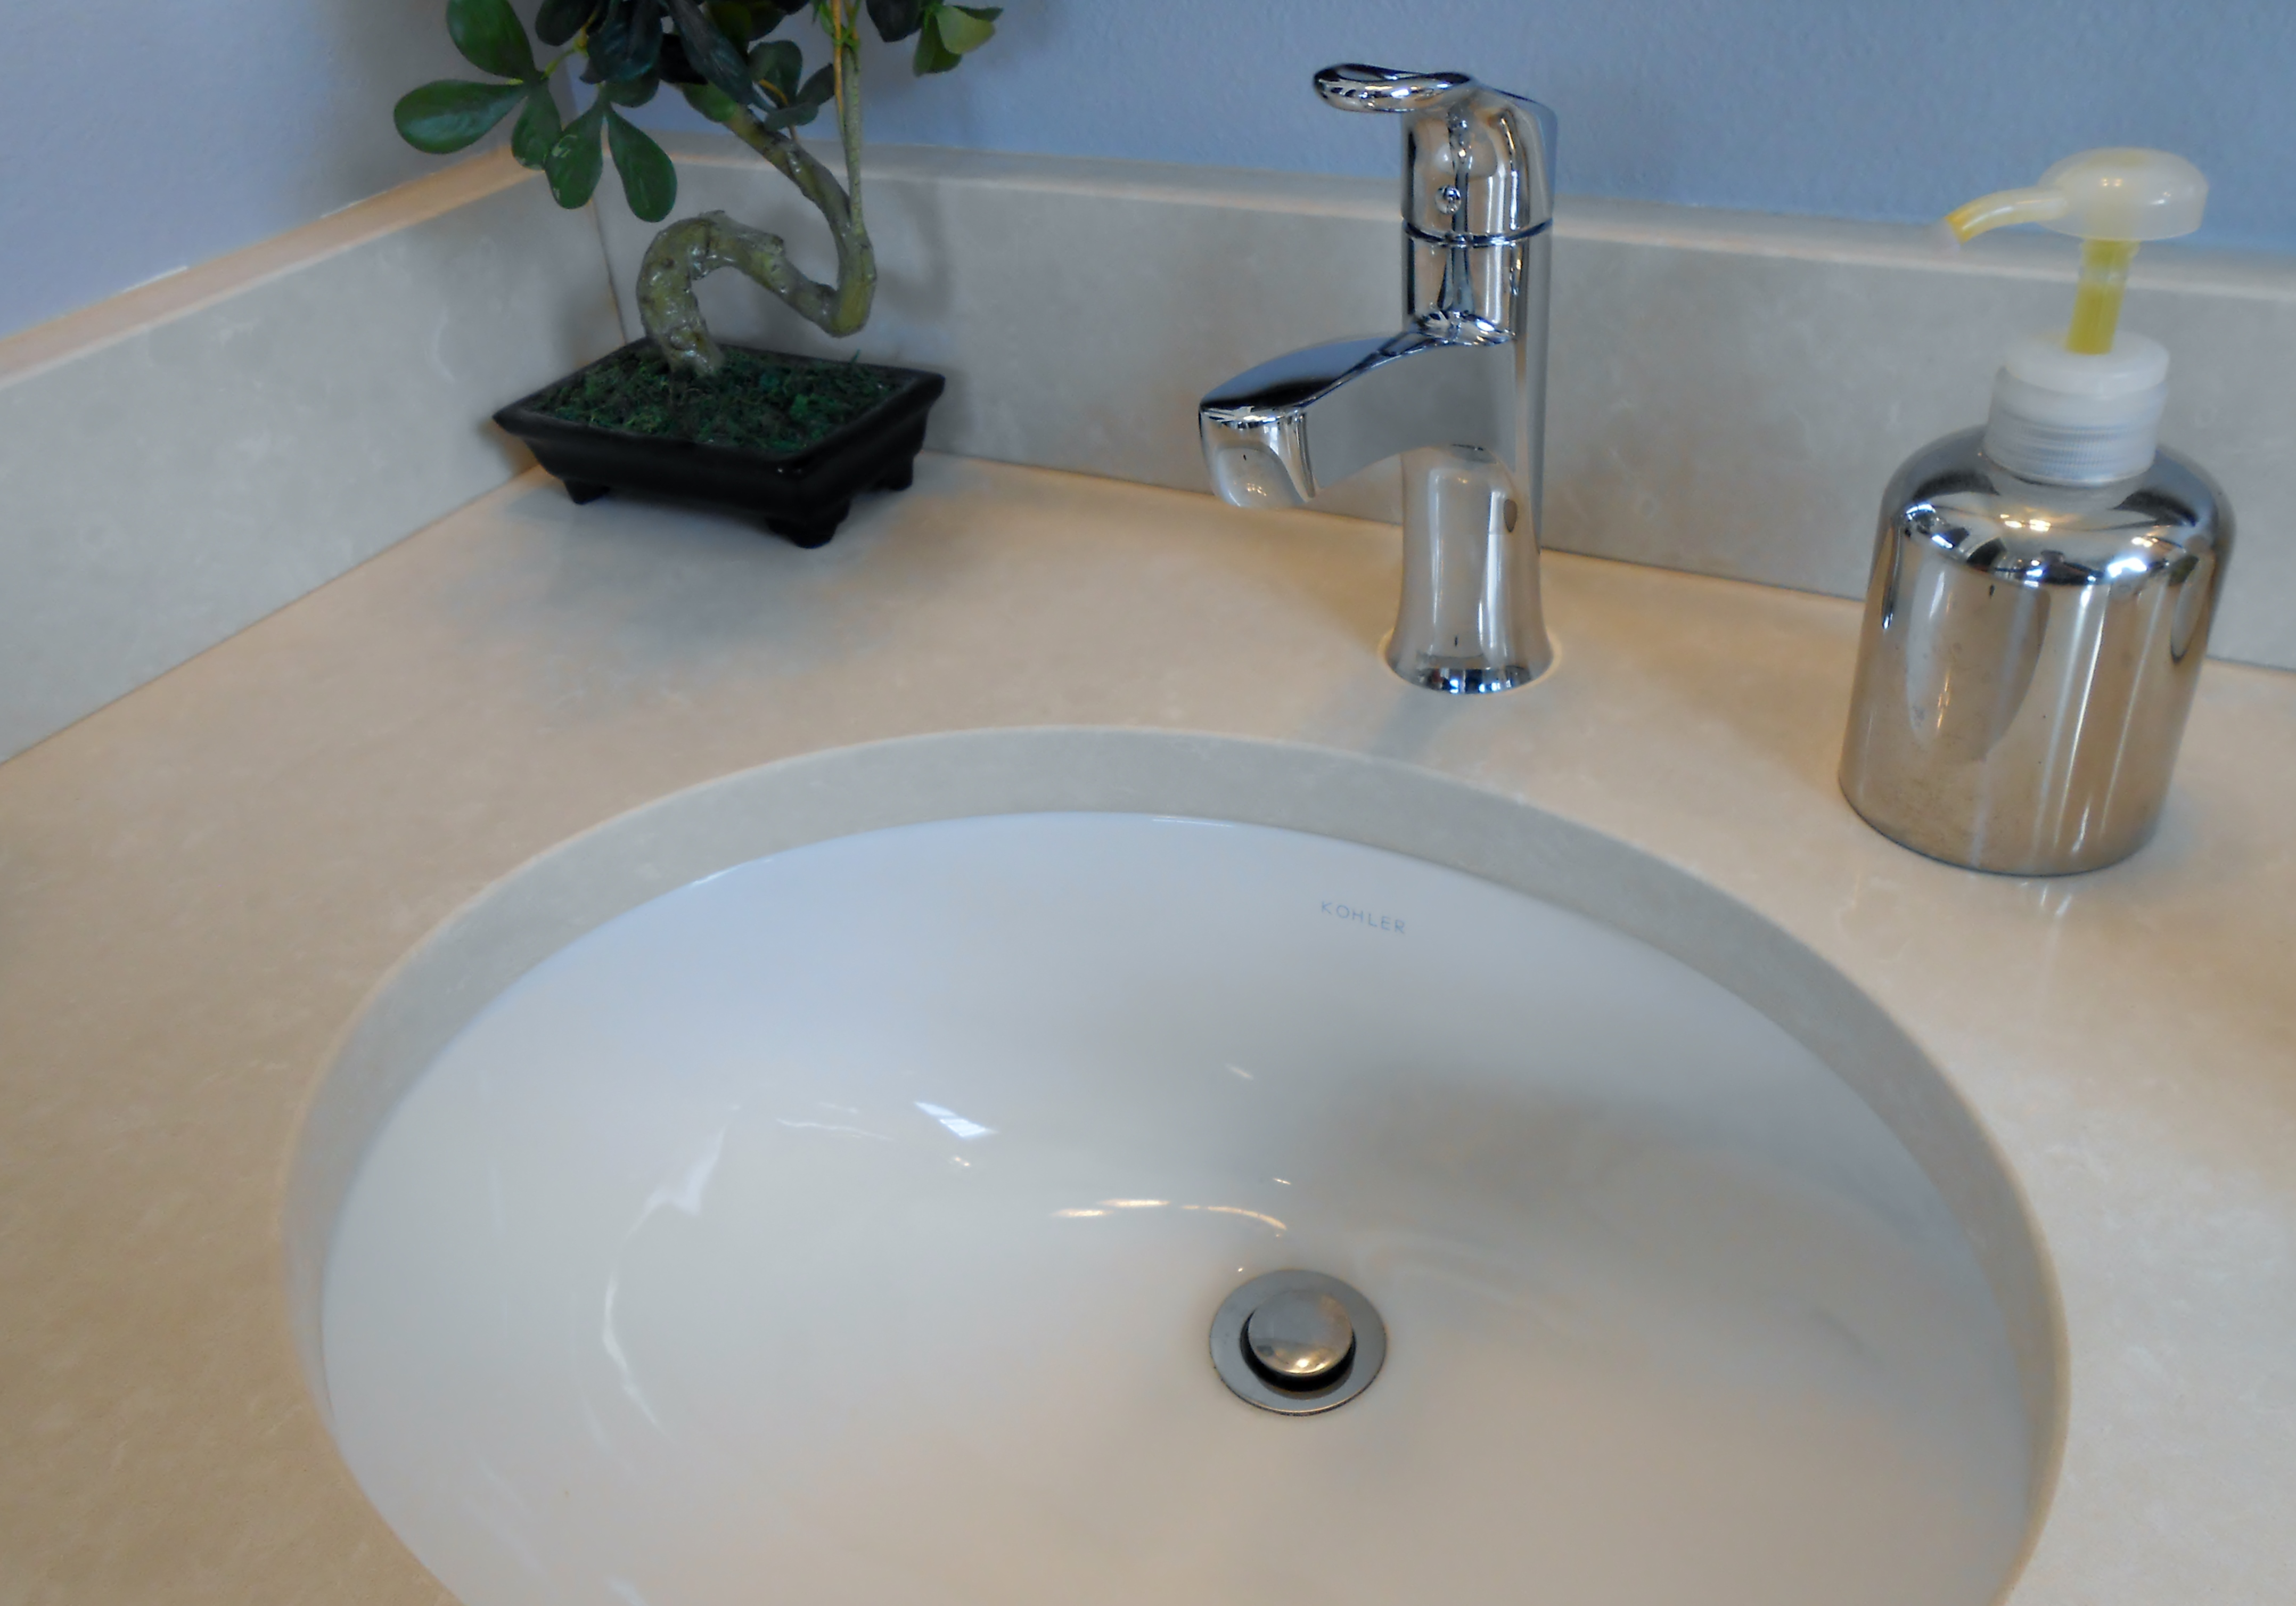 chrome plumbing fixture and undermount sink